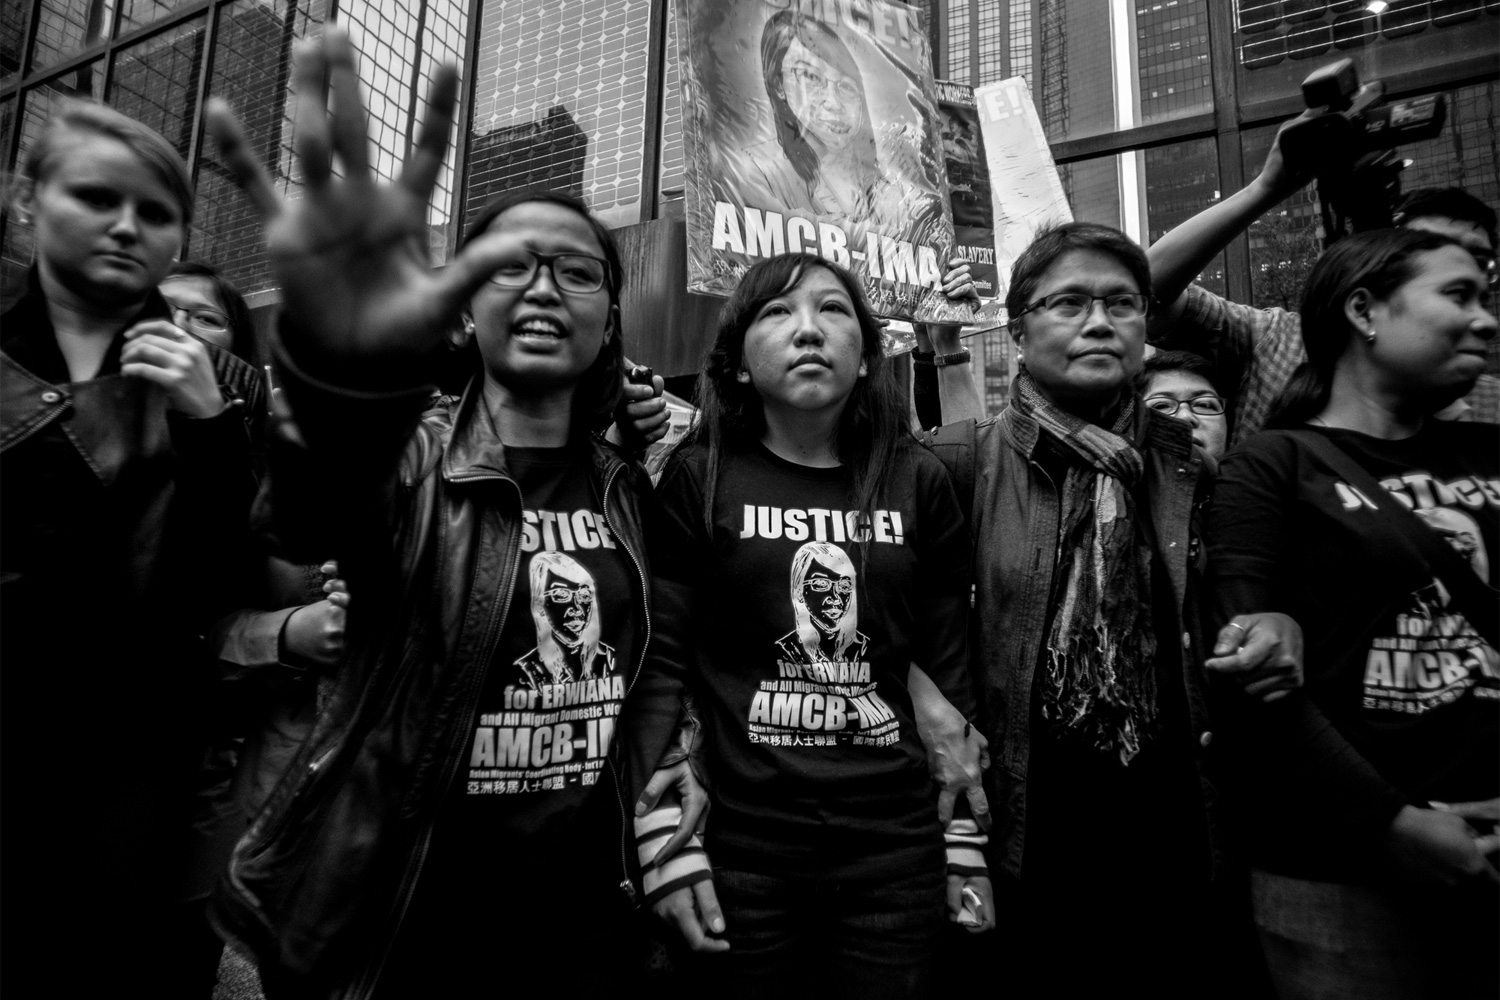 Erwiana Sulistyaningsih, center, leaves the sentencing hearing for Law Wan-tung in Wan Chai, Hong Kong, February 27, 2015. In a lawsuit that received international attention, a judge sentenced Sulistyaningsih's former employer, Law, to a six-year prison term on eight charges of assault. Found guilty of 18 out of 20 charges, Law was also fined H.K.$15,000, or U.S.$1,930, for failing to pay wages or grant her days off. Law physically, mentally, and psychologically abused Sulistyaningsih for months. She was beaten, underfed, and didn't receive wages, and her health deteriorated so much so that she was eventually unable to walk. Her employer threatened to hurt her family in Indonesia if she told anyone about the abuse and took her to the airport to send her back to Indonesia. There, another Indonesian traveler noticed her and helped her.